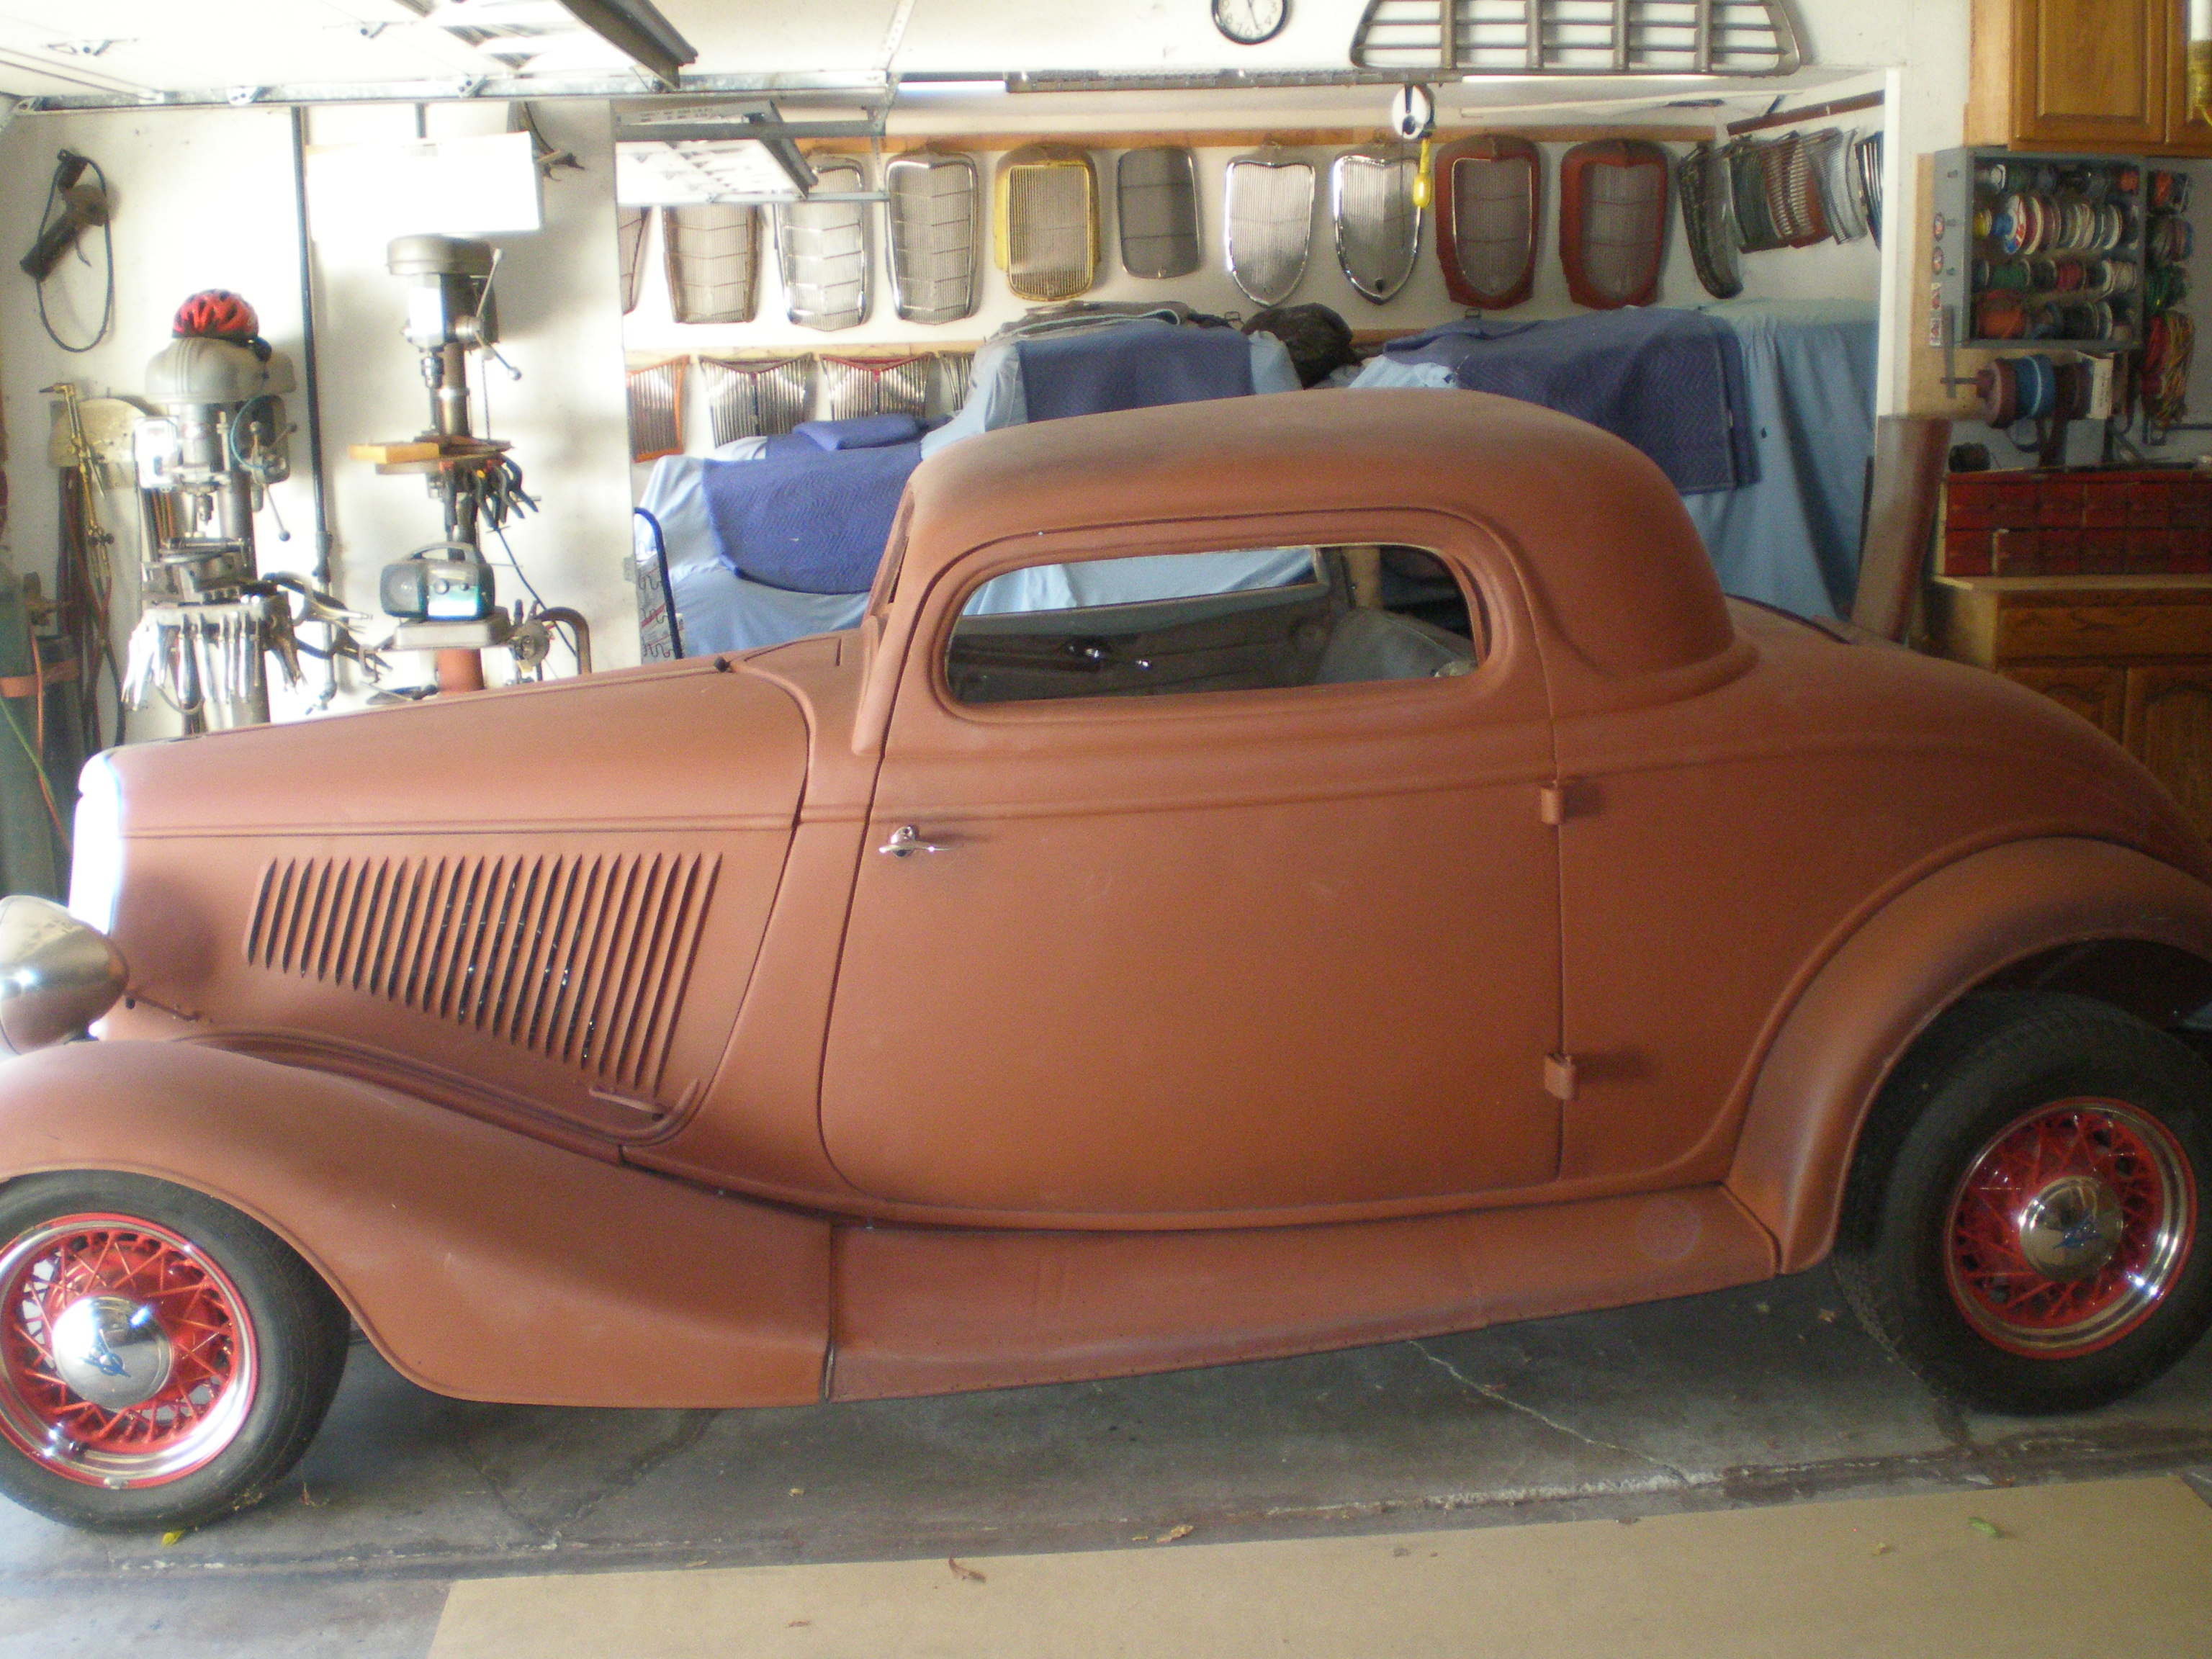 FOR SALE :1934 Ford 3-Window coupe (chopped top) | The H.A.M.B.